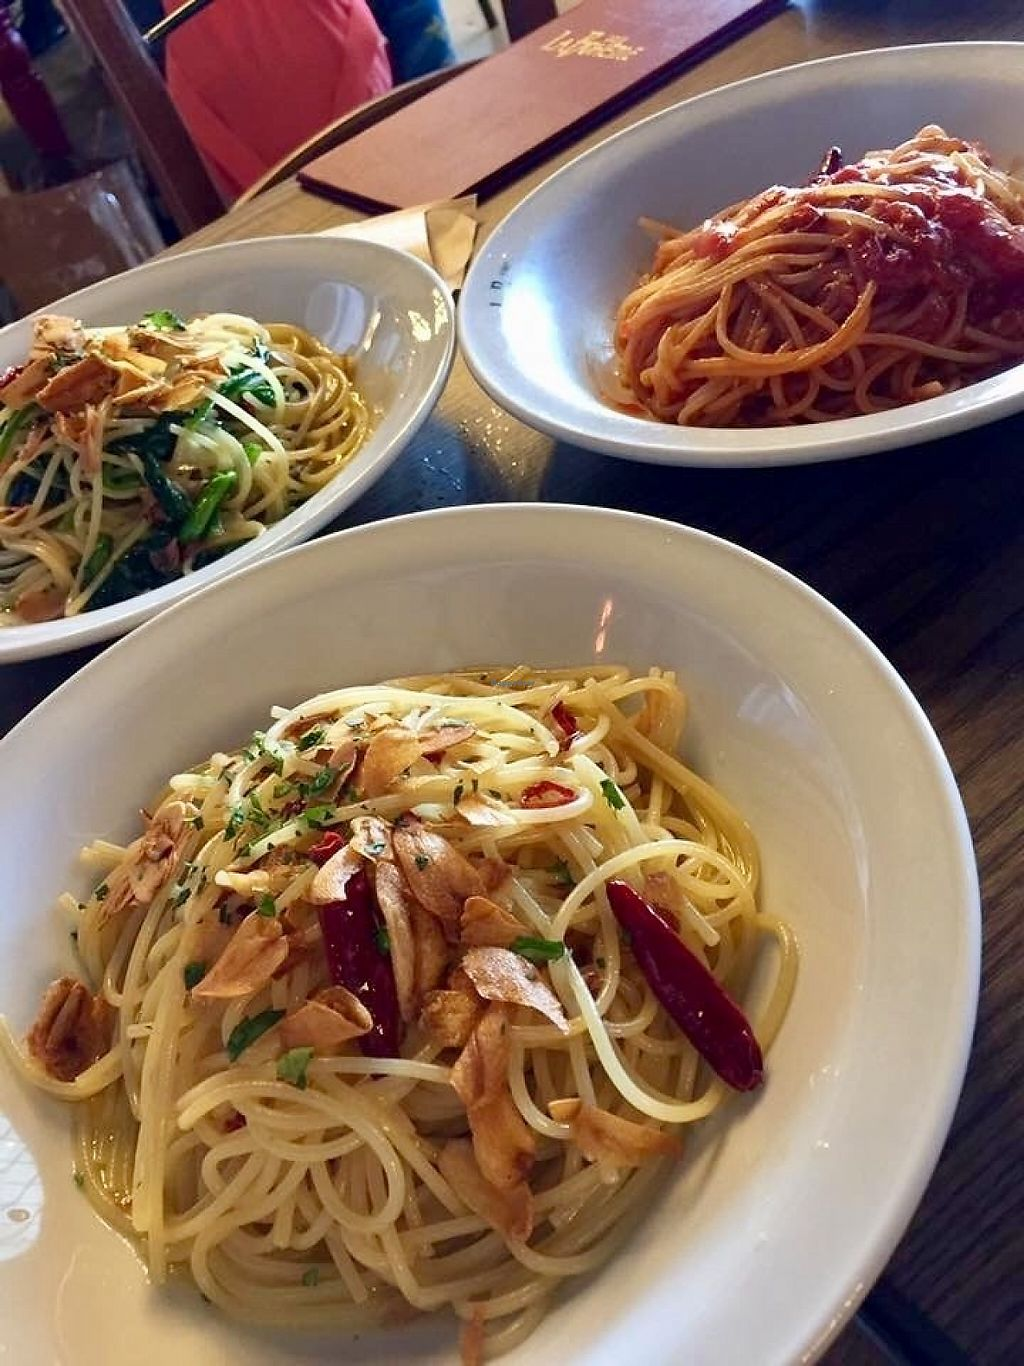 """Photo of Cafe La Boheme - G-Zone  by <a href=""""/members/profile/paulkates"""">paulkates</a> <br/>Vegan pasta <br/> June 7, 2017  - <a href='/contact/abuse/image/93479/266521'>Report</a>"""